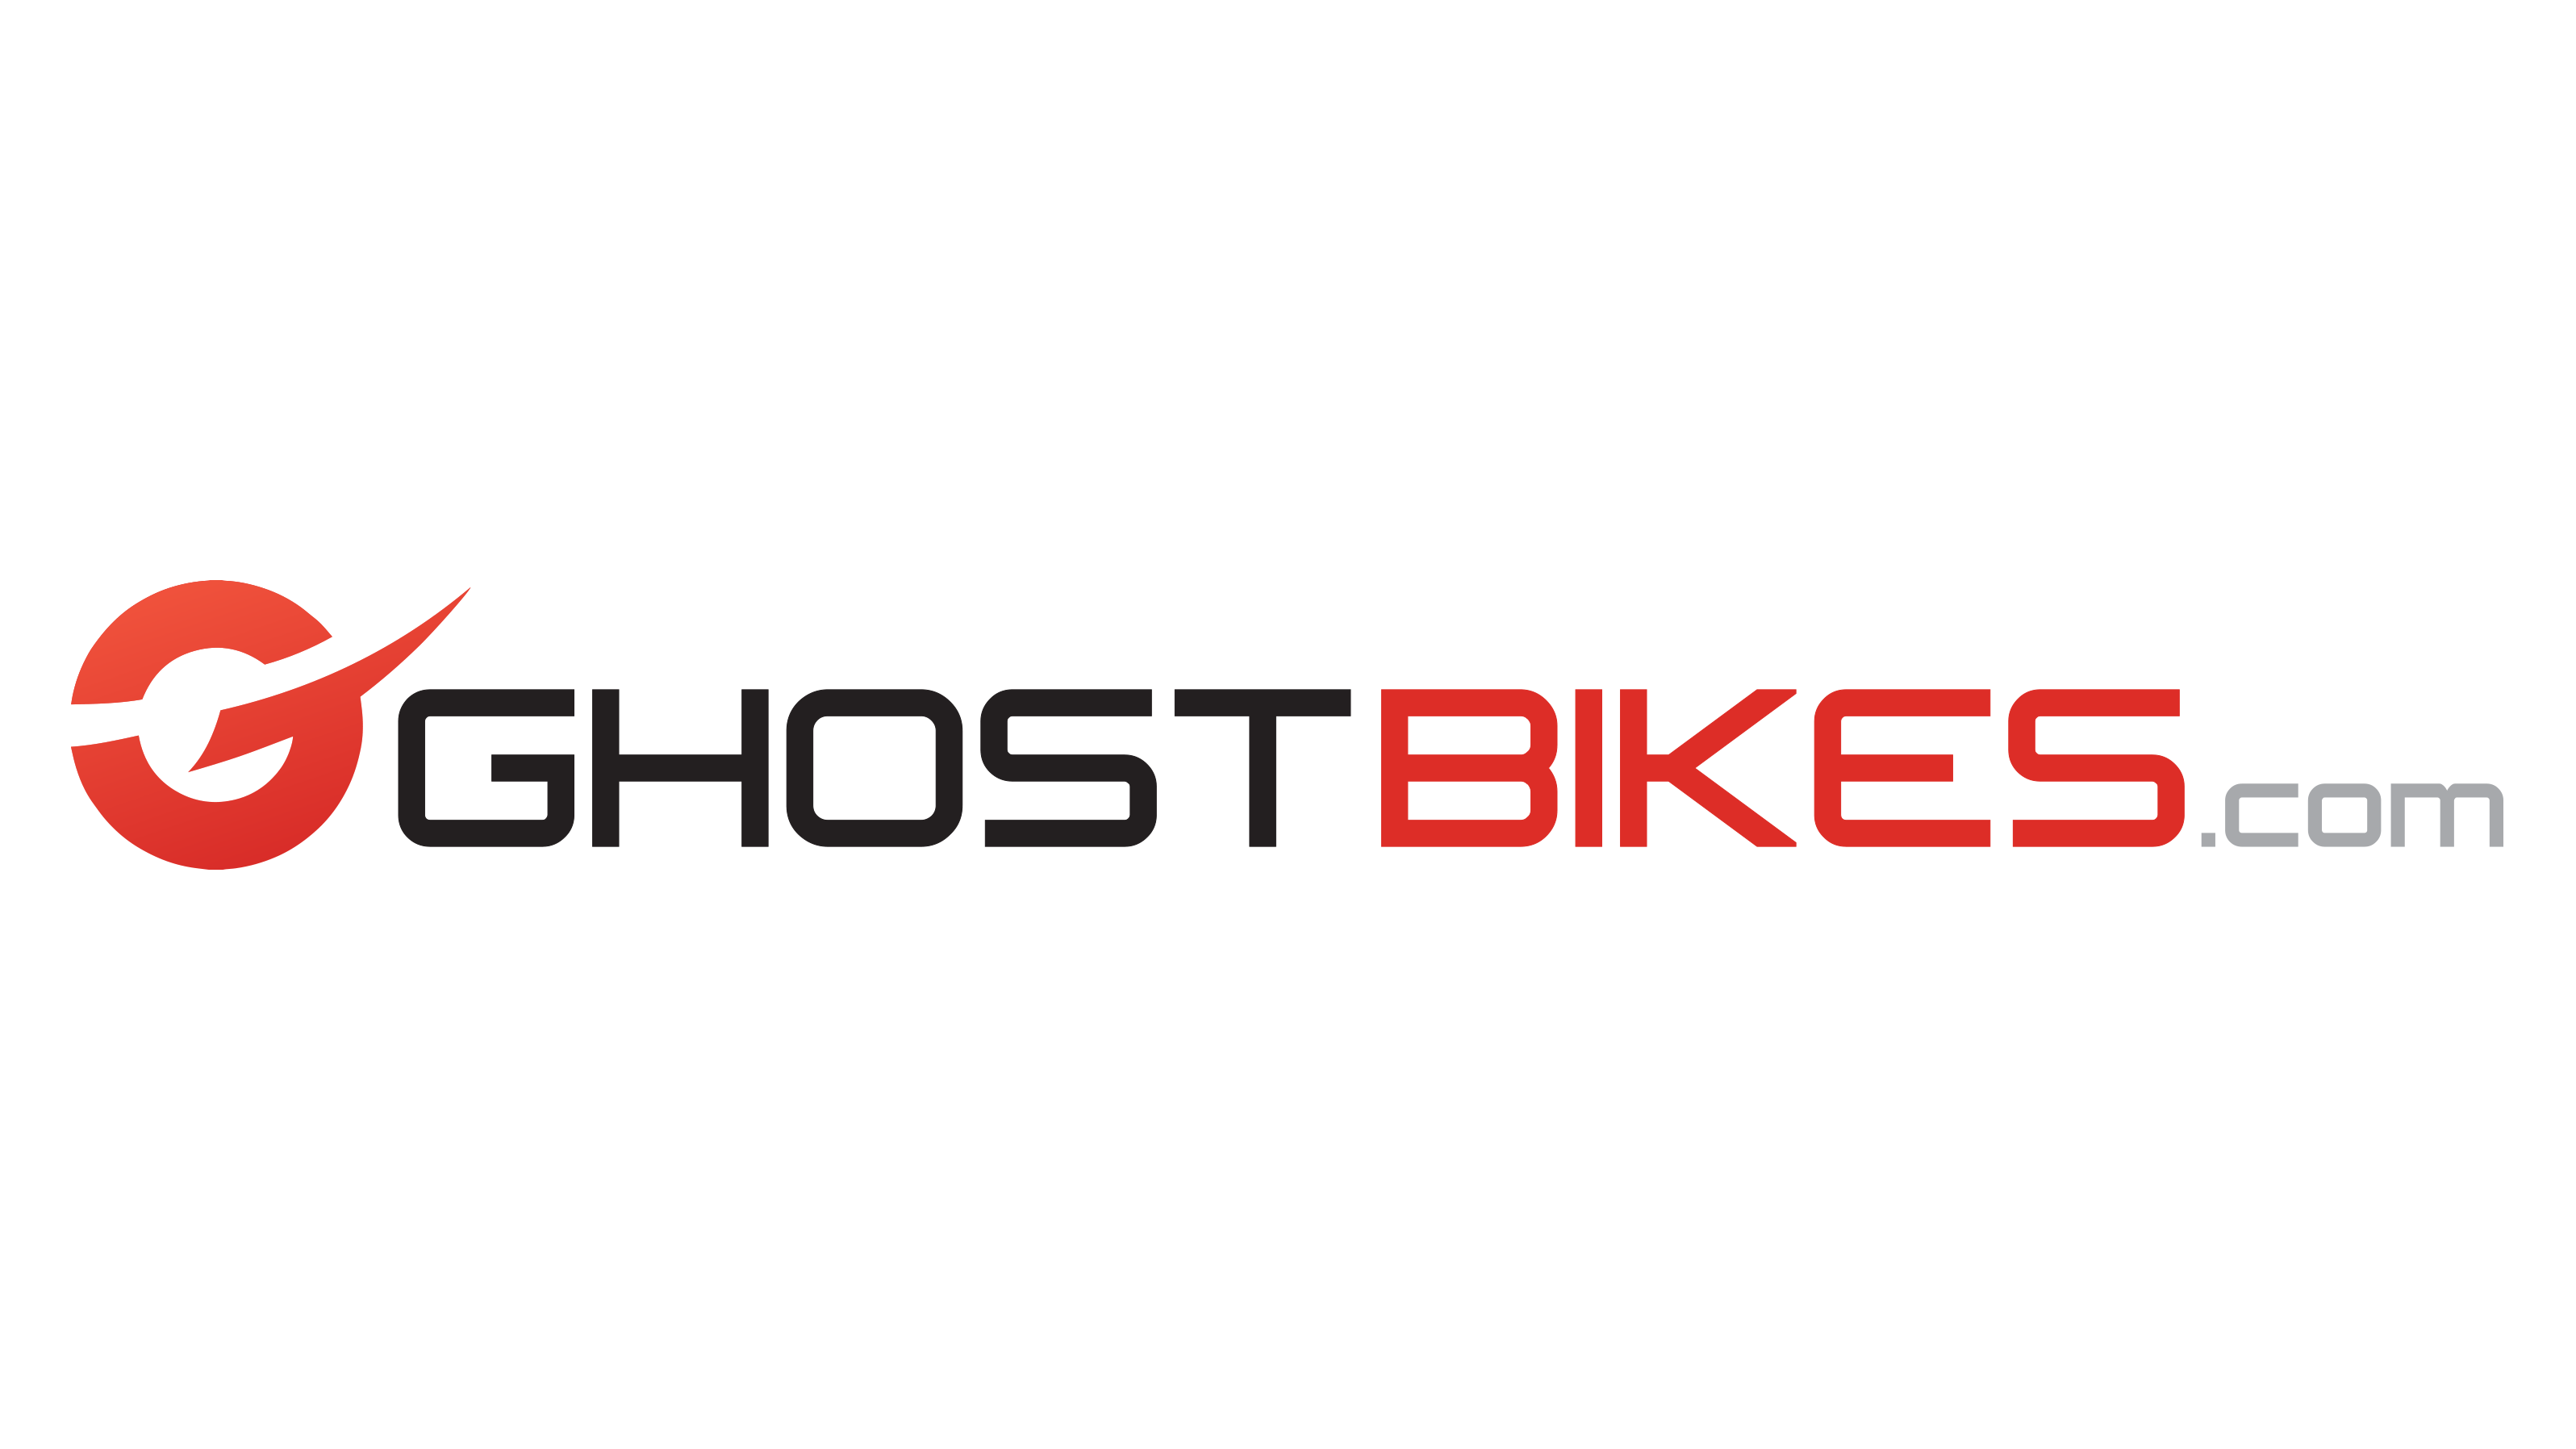 GhostBikes Coupons & Promo Codes